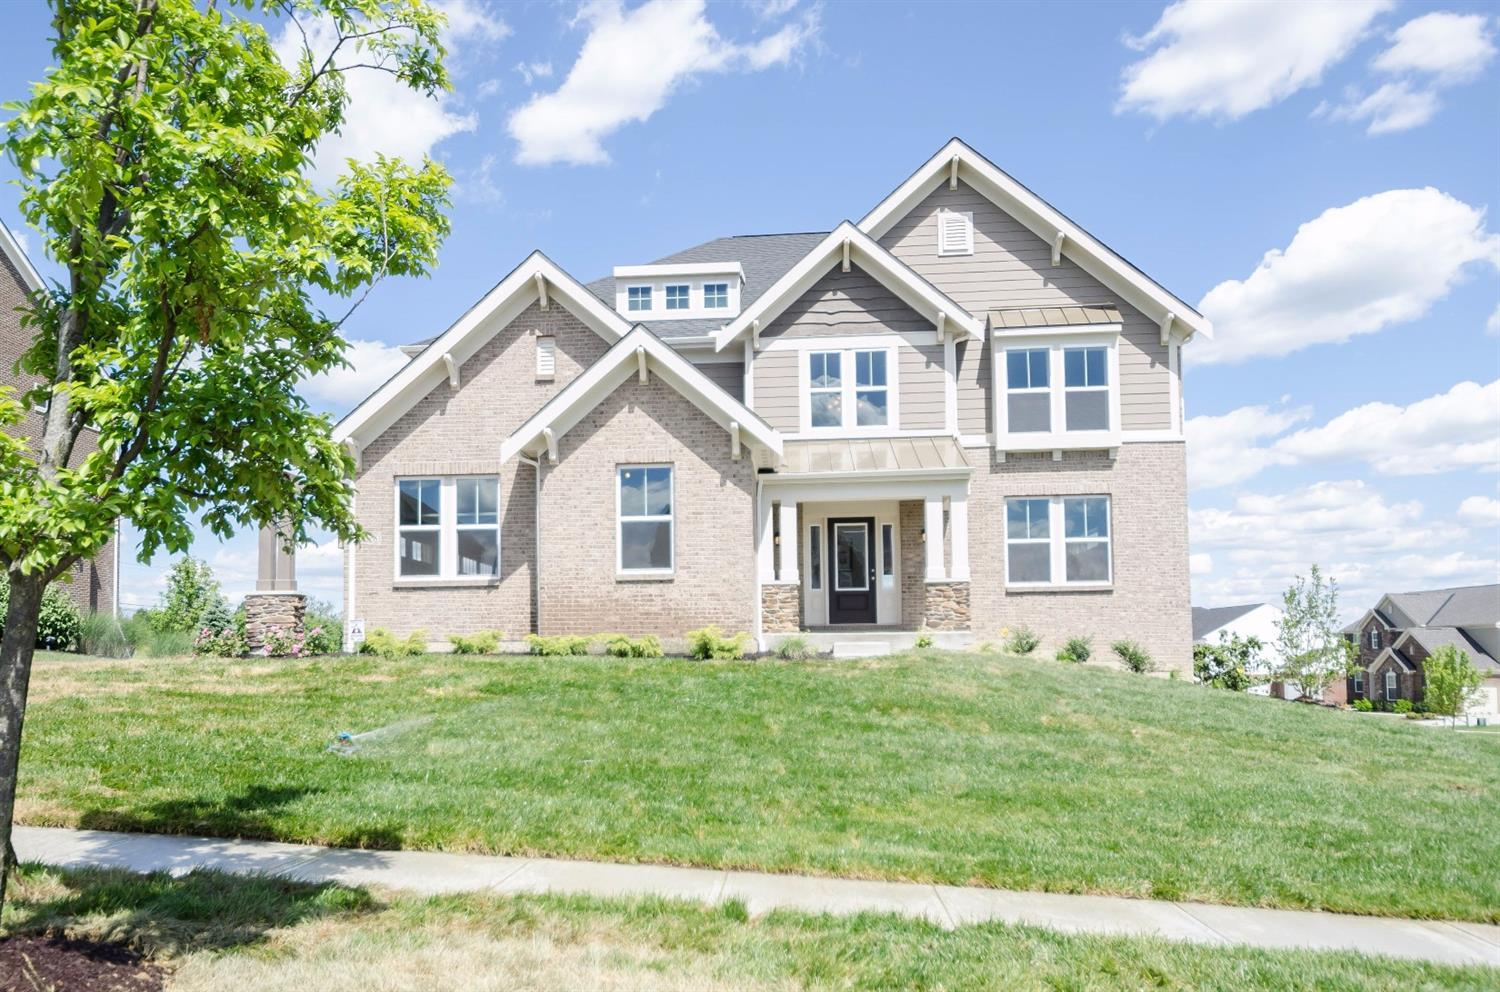 7228 GLENVIEW FARM DRIVE, West Chester, OH Homes & Land - Real Estate